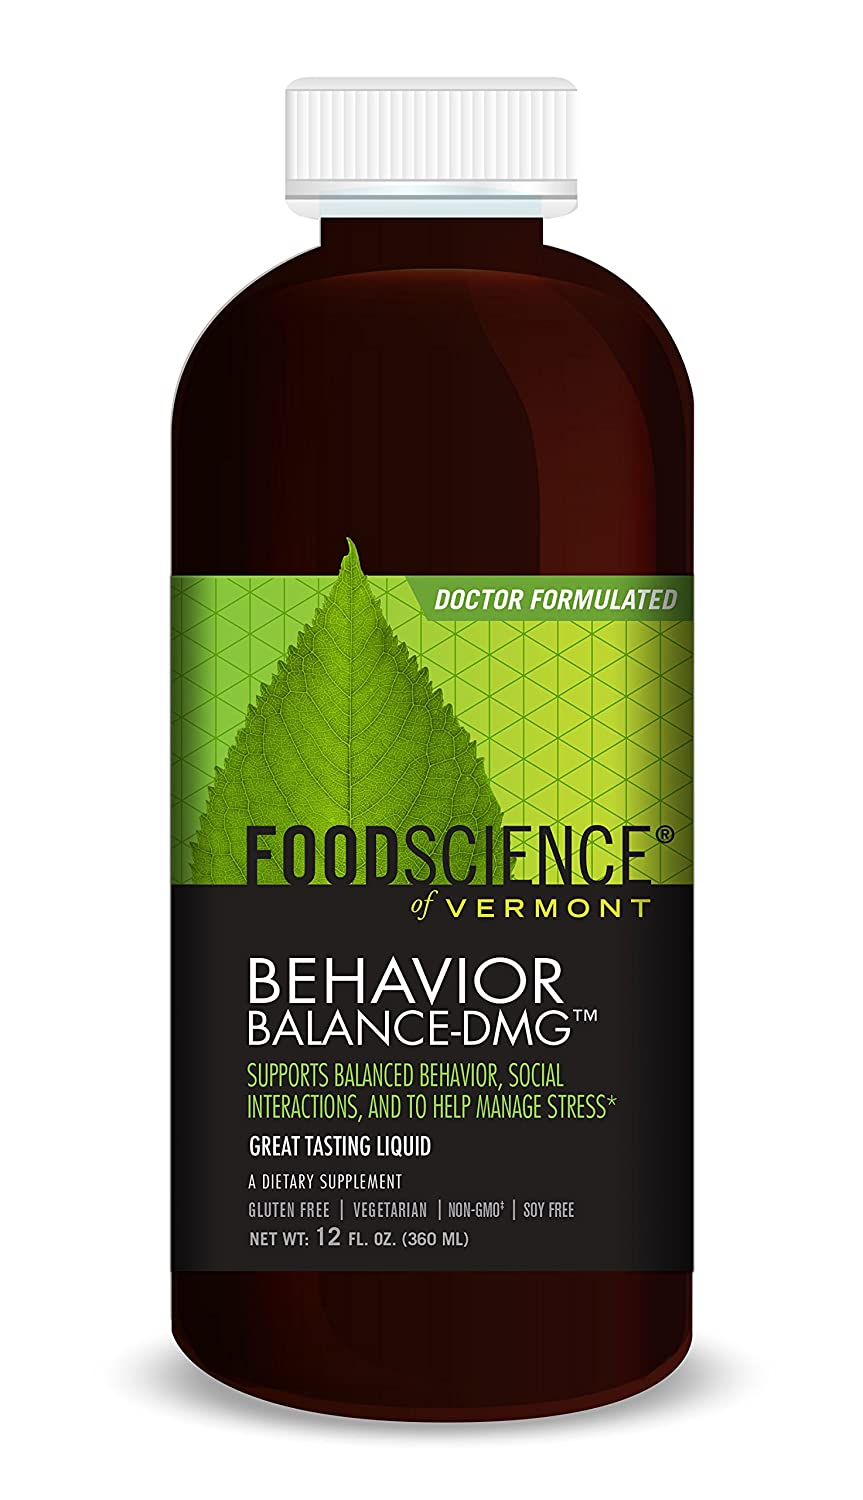 FoodScience of Vermont Behavior Balance-DMG Liquid, Behavior Support  Supplement, 12 FL OZ